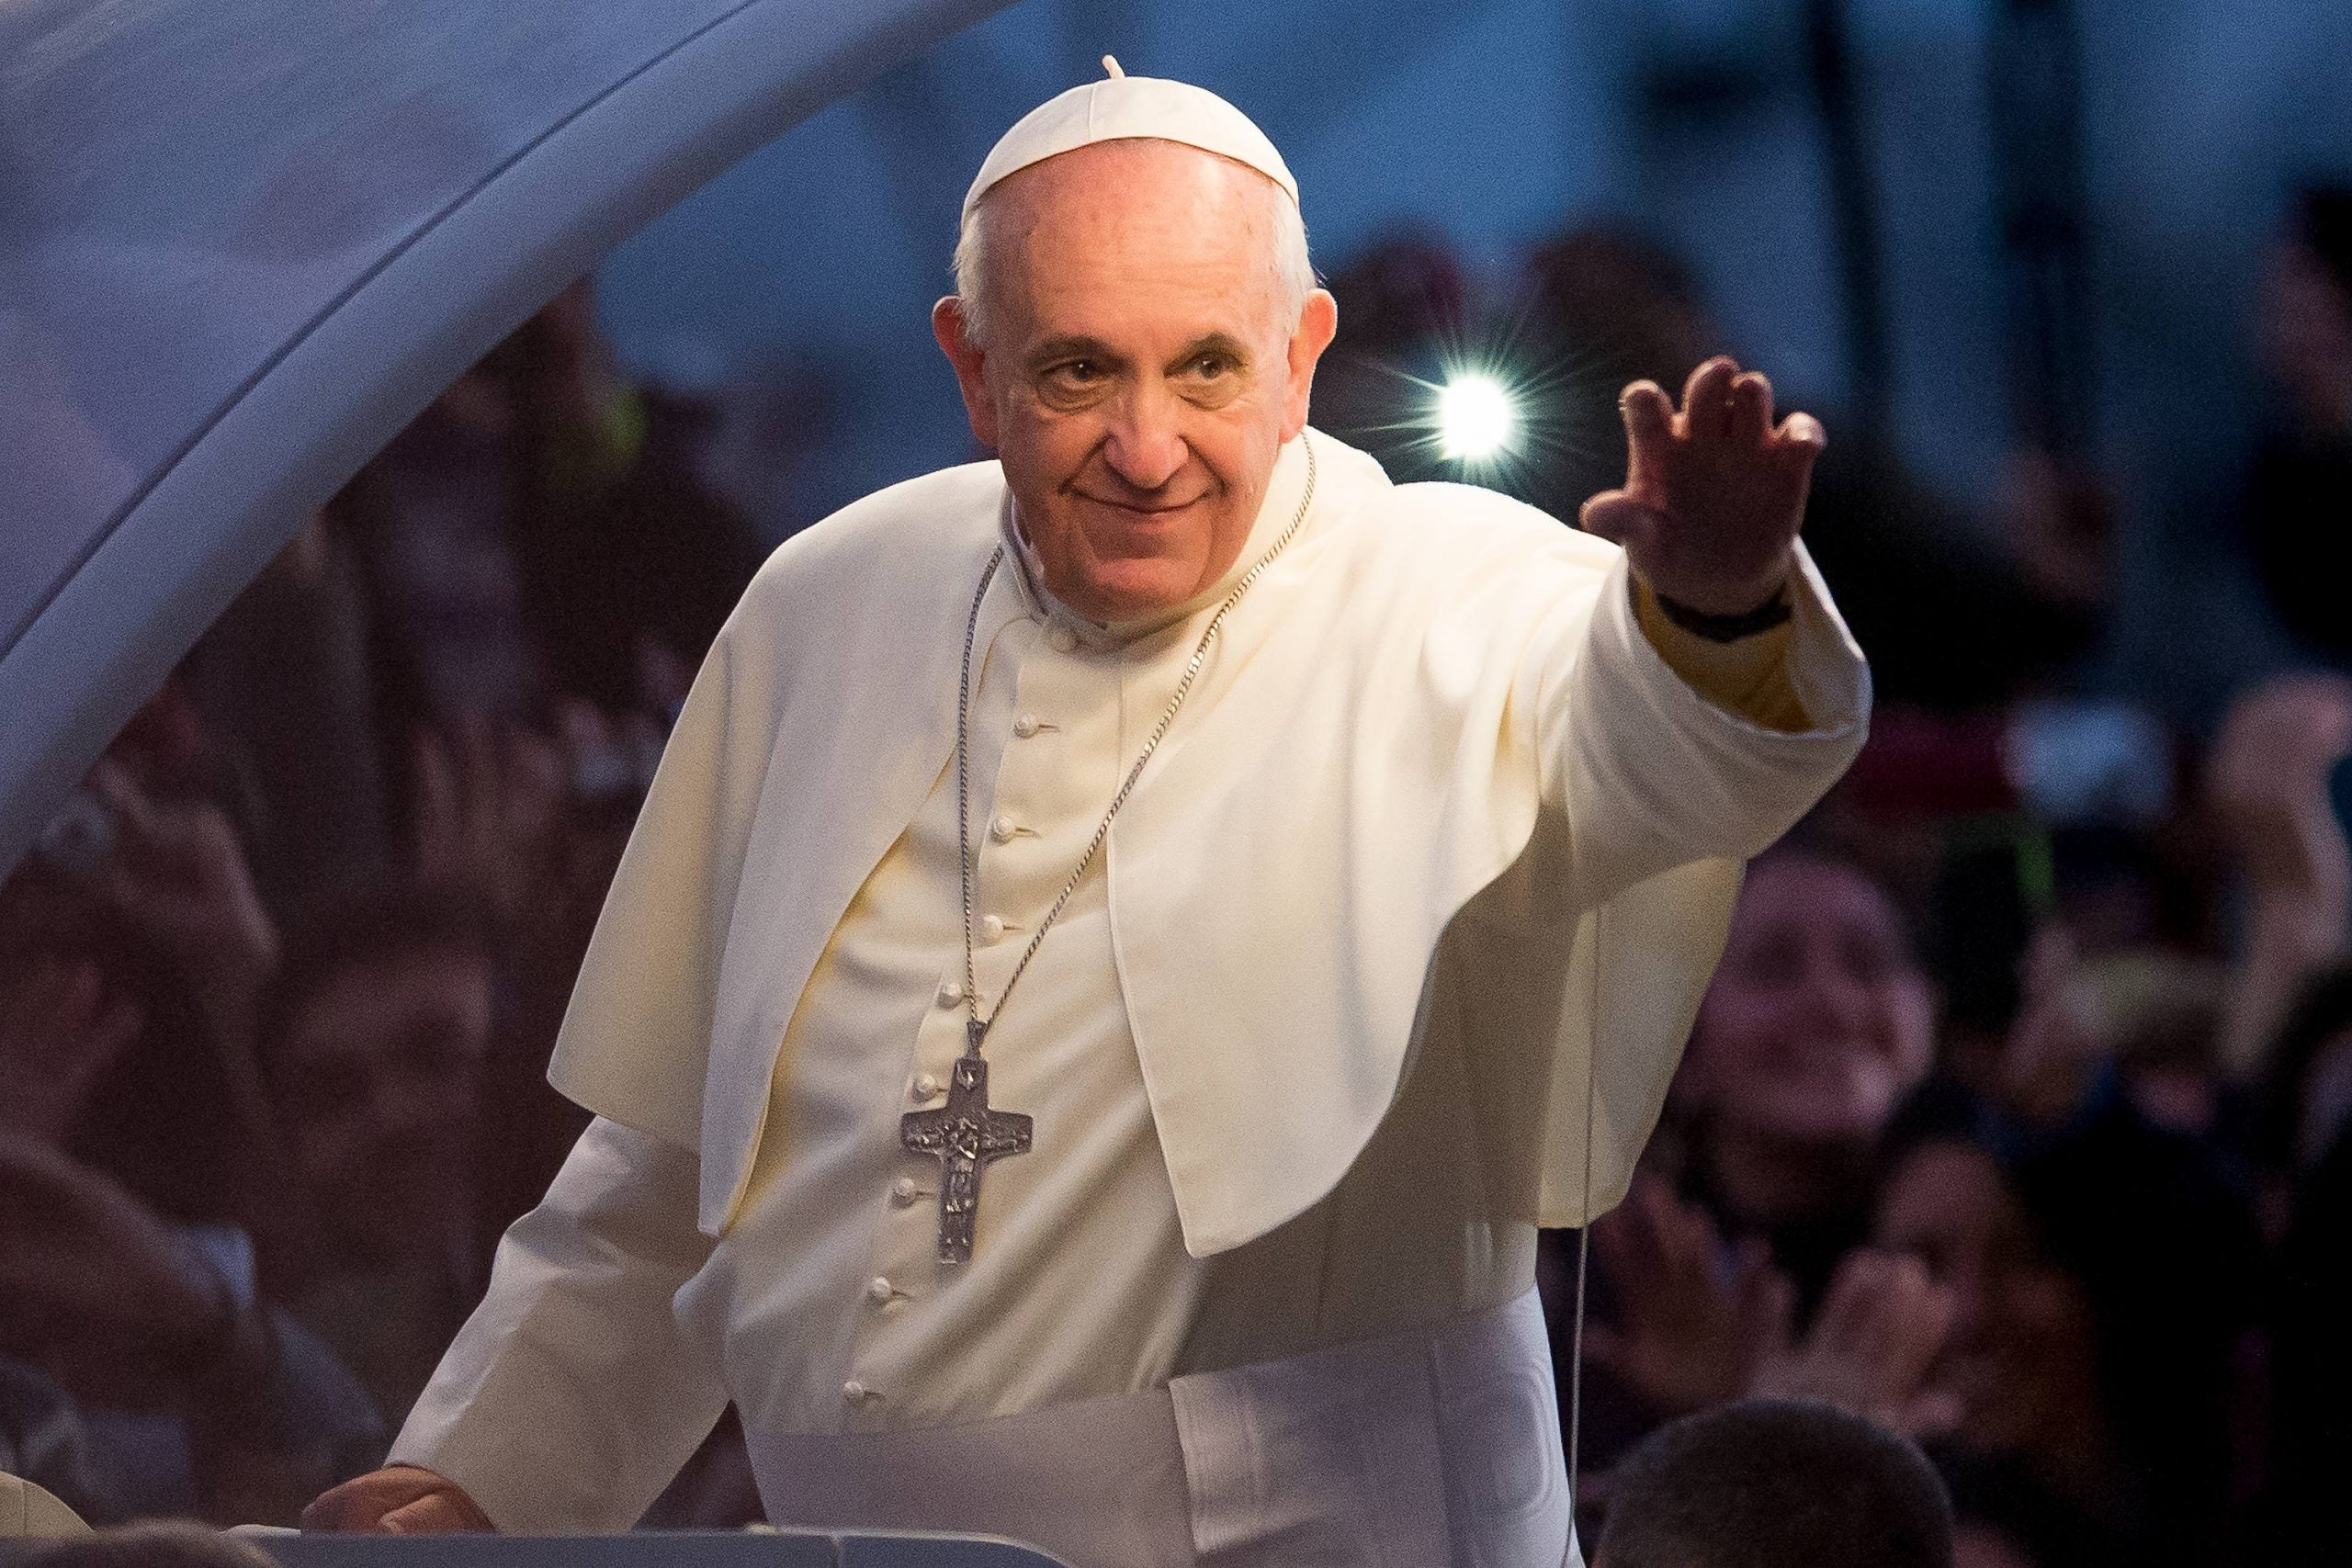 What the left can learn from Pope Francis